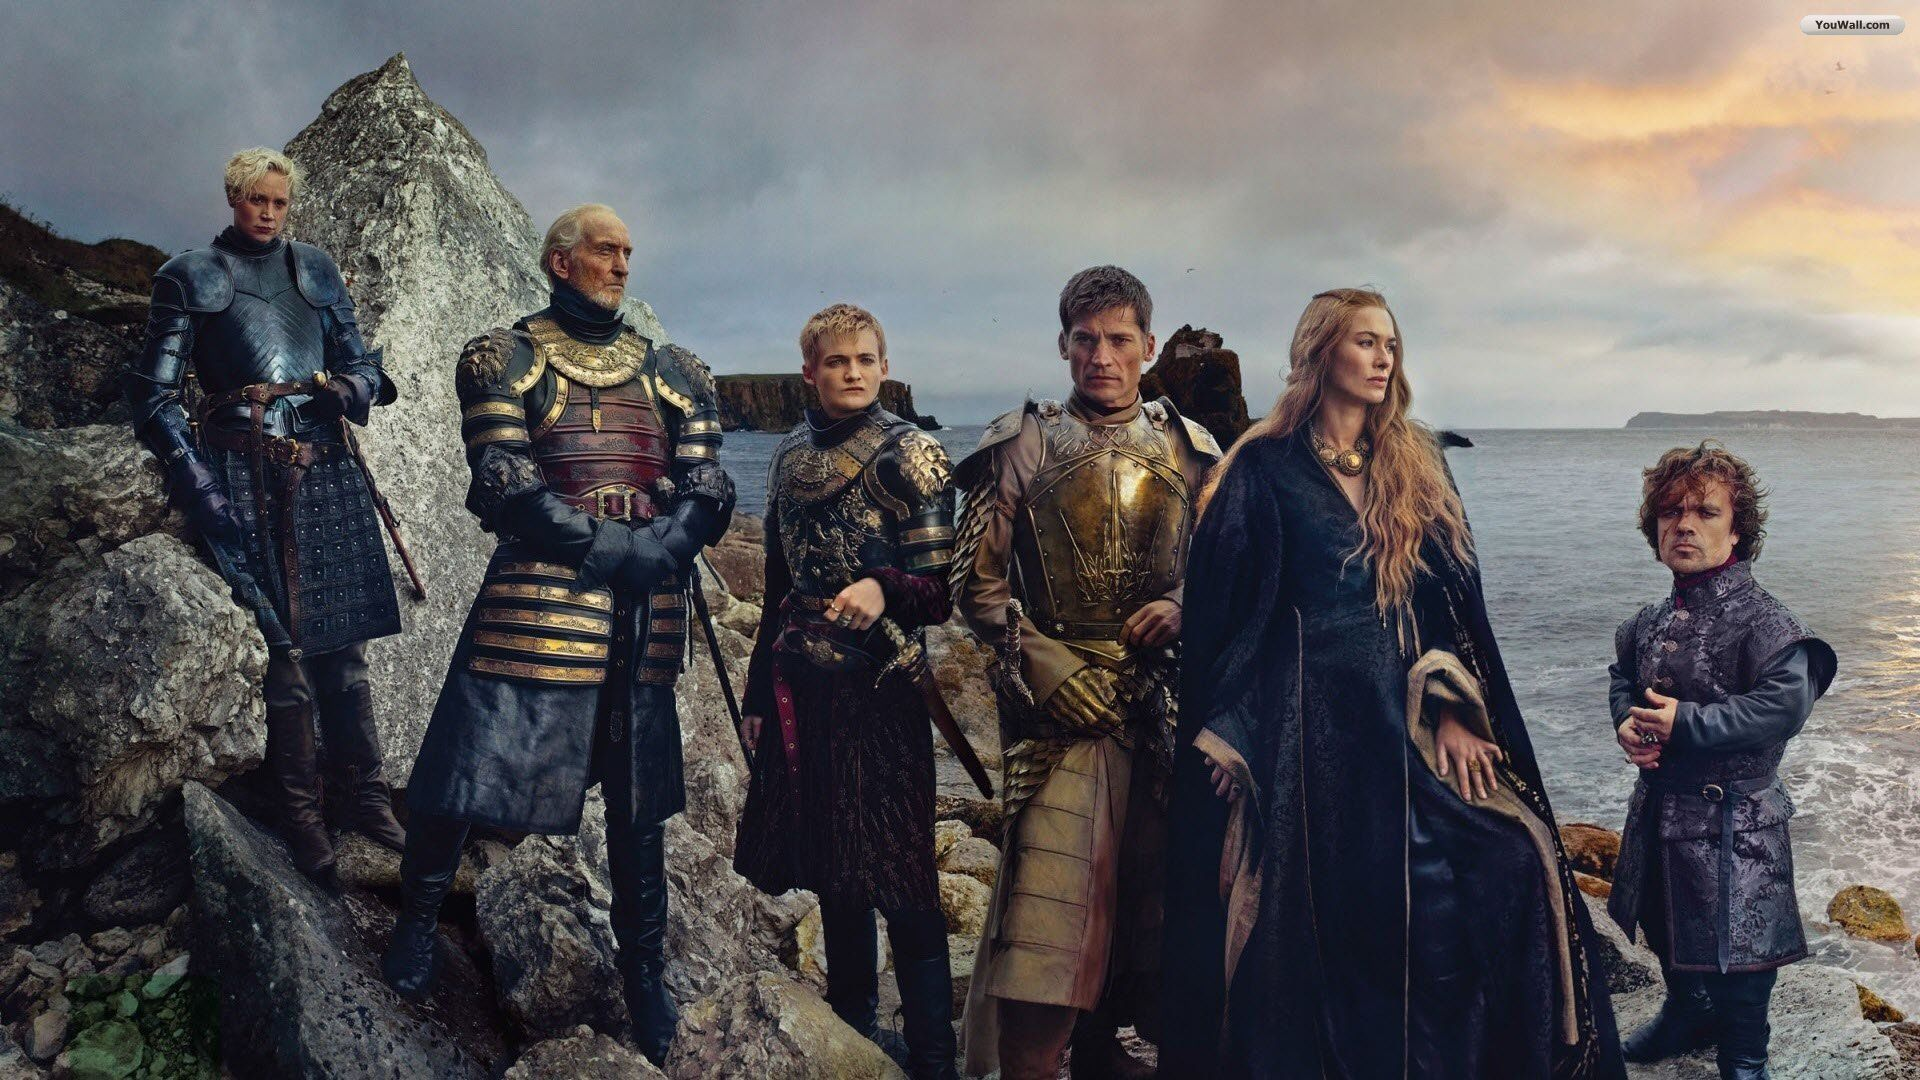 Game of thrones cast, Lannister. Tywin Lannister, Cersei ...